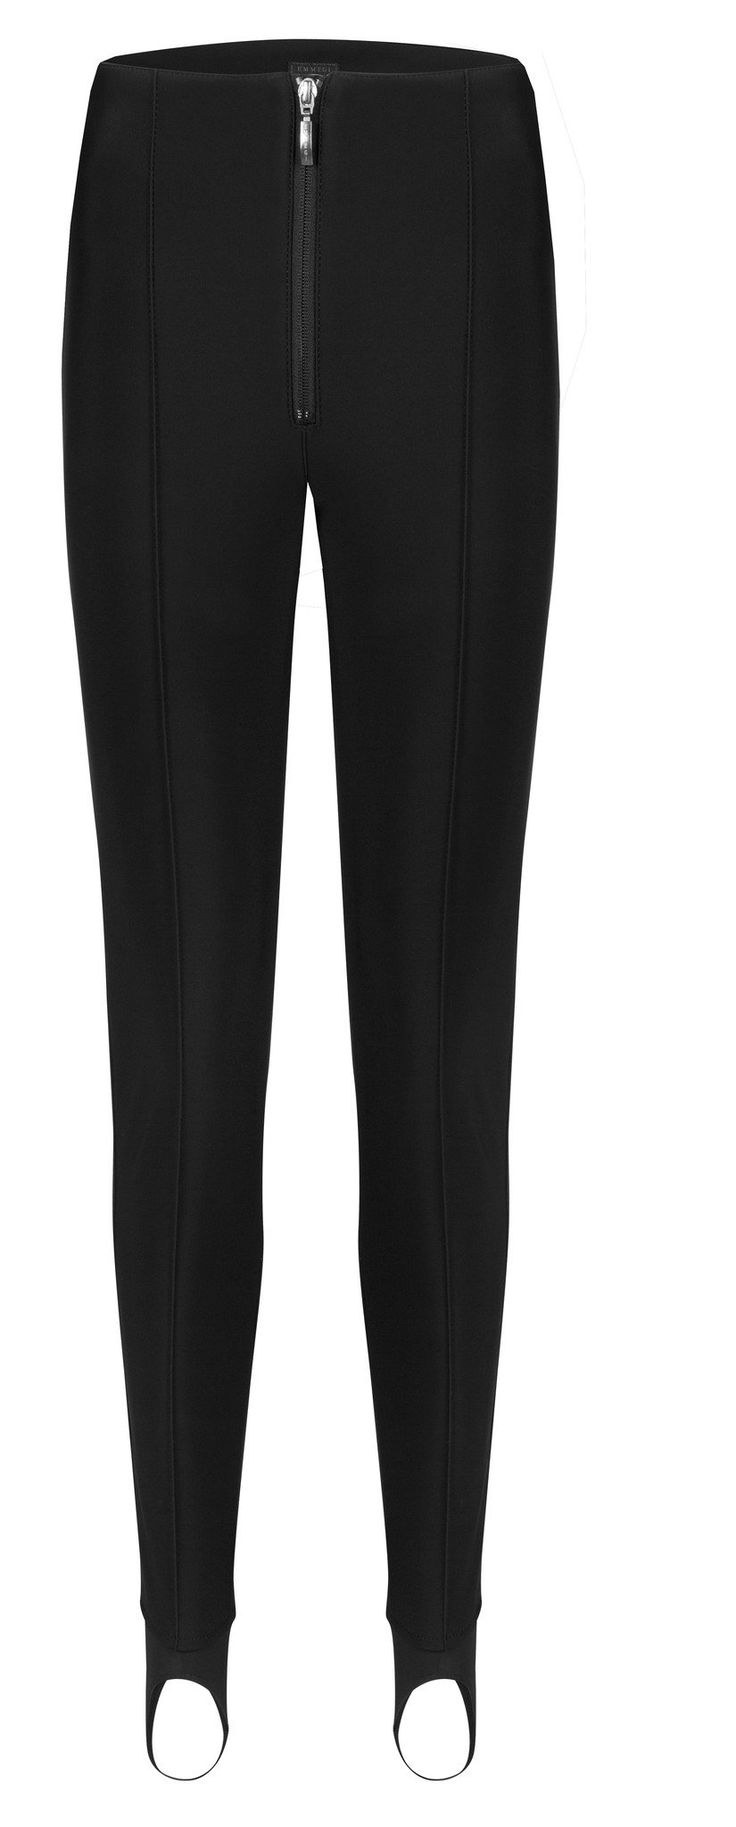 Stretch stirrup ski pant by Emmegi. Skinny ski trouser. Available in black, white or navy. Luxury ladies ski salopettes.